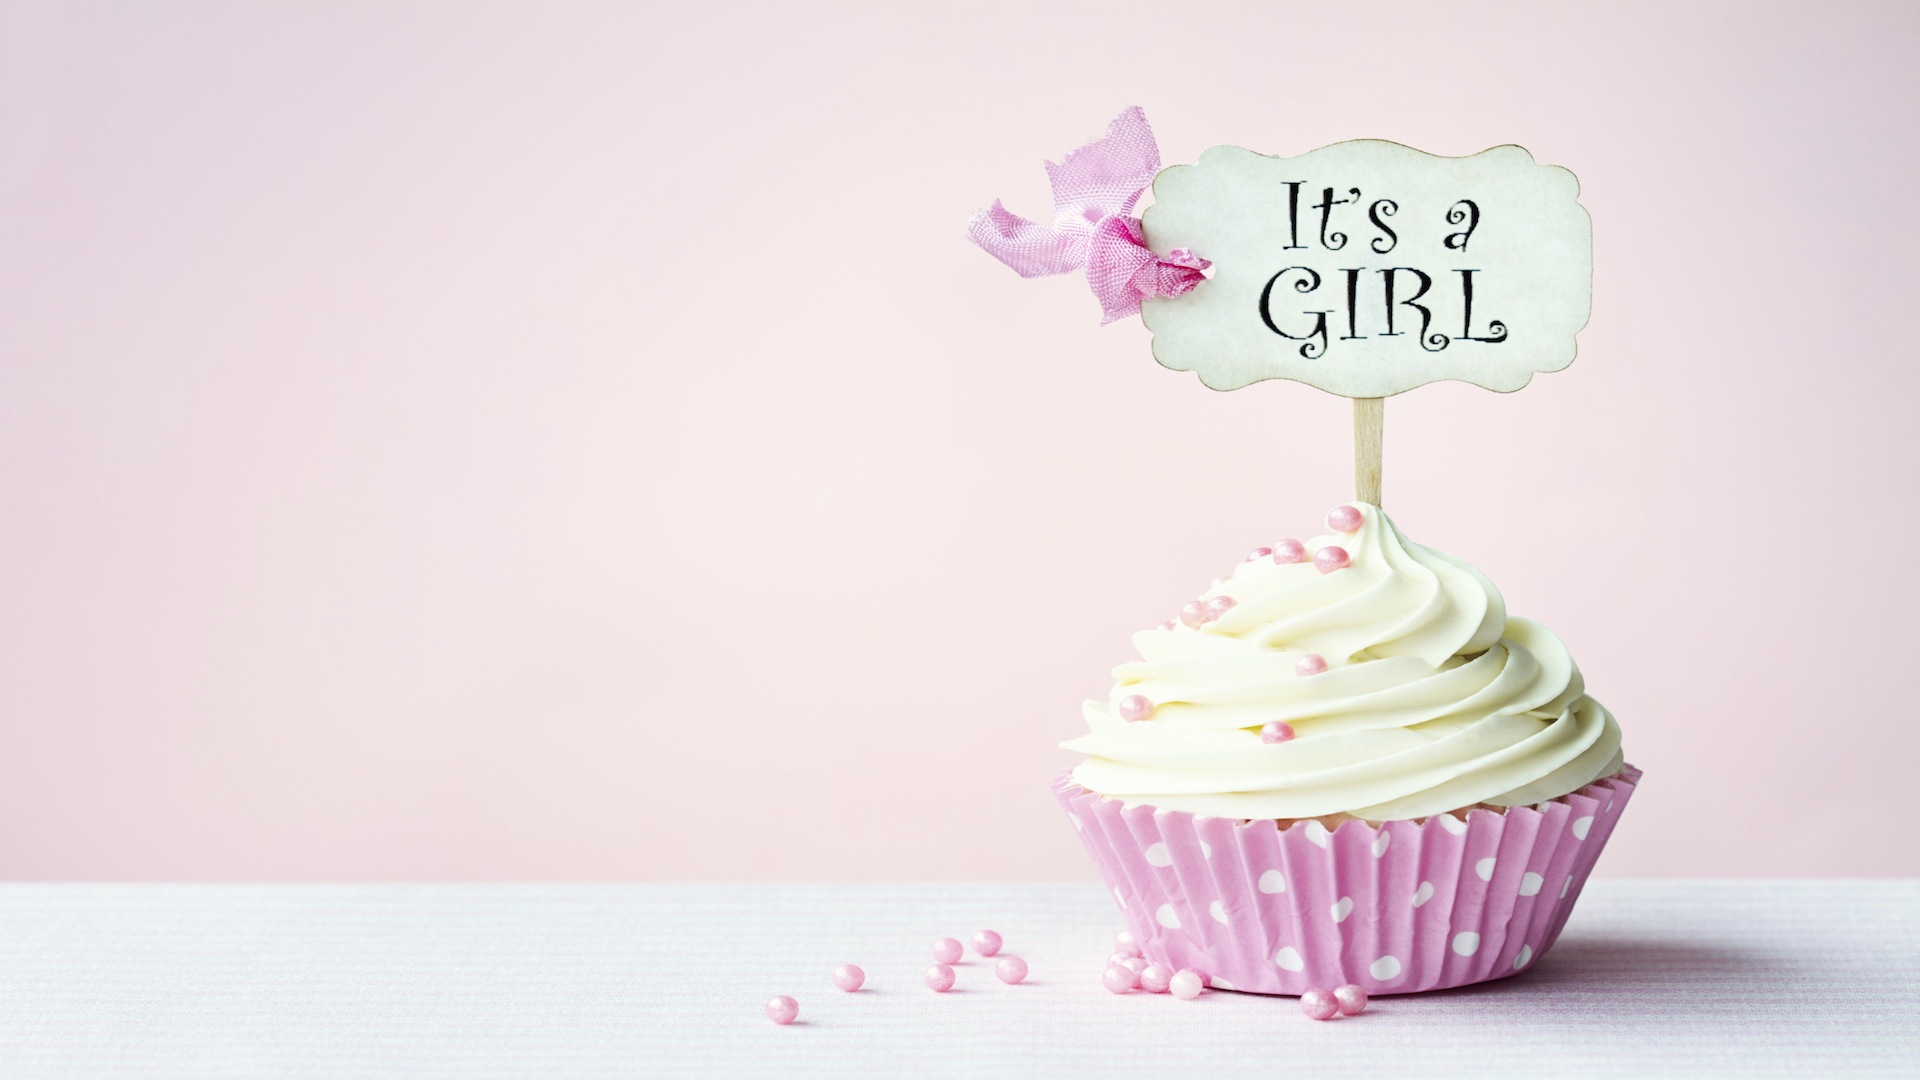 Cupcake with It's a Girl flag